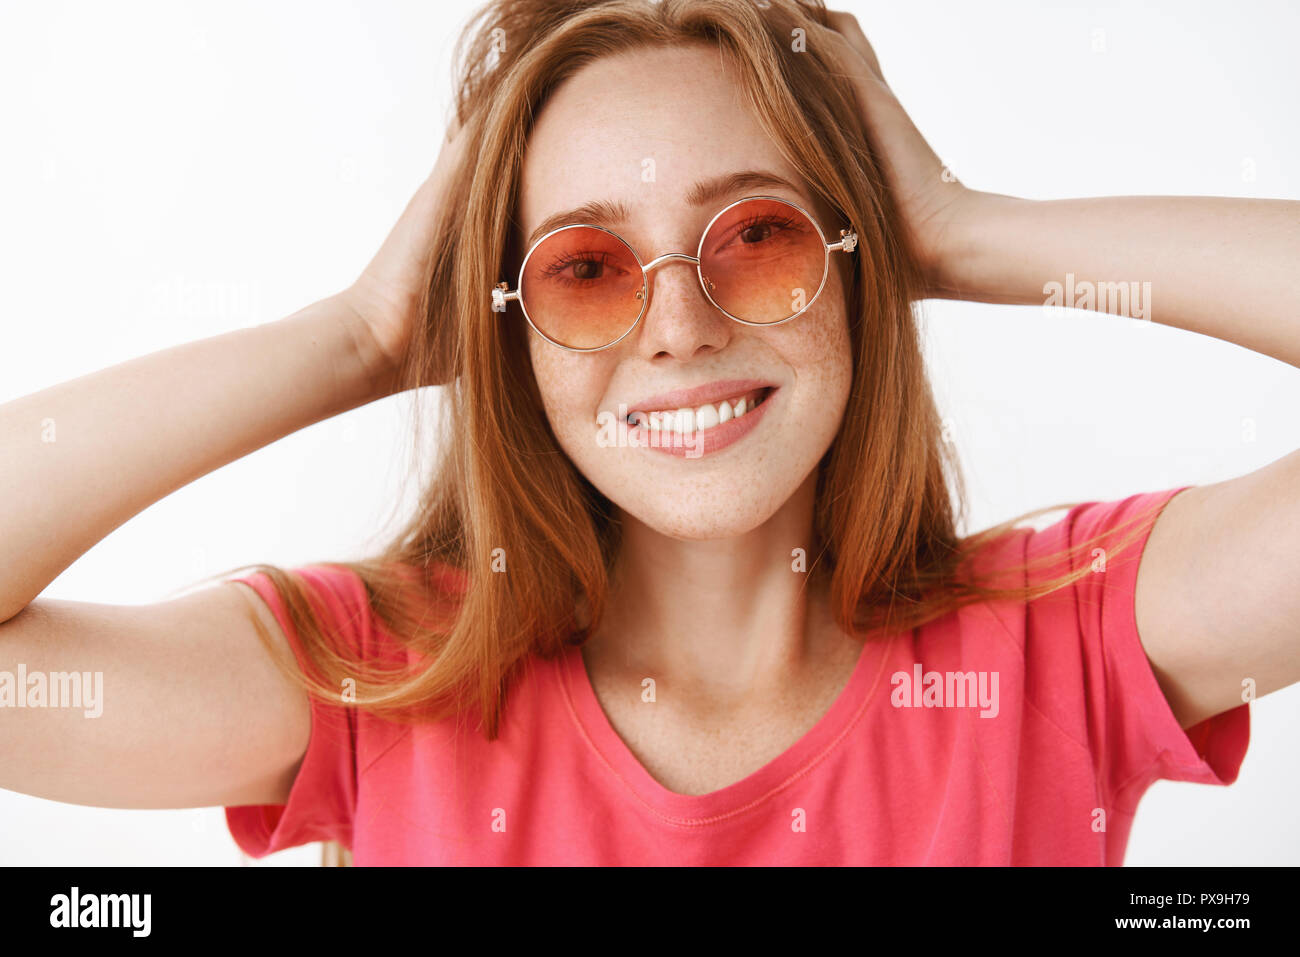 f1a821f3b7a Headshot of creative and happy attractive ginger girl with cute freckles in  stylish pink sunglasses touching hairstyle and smiling broadly enjoying new  look ...